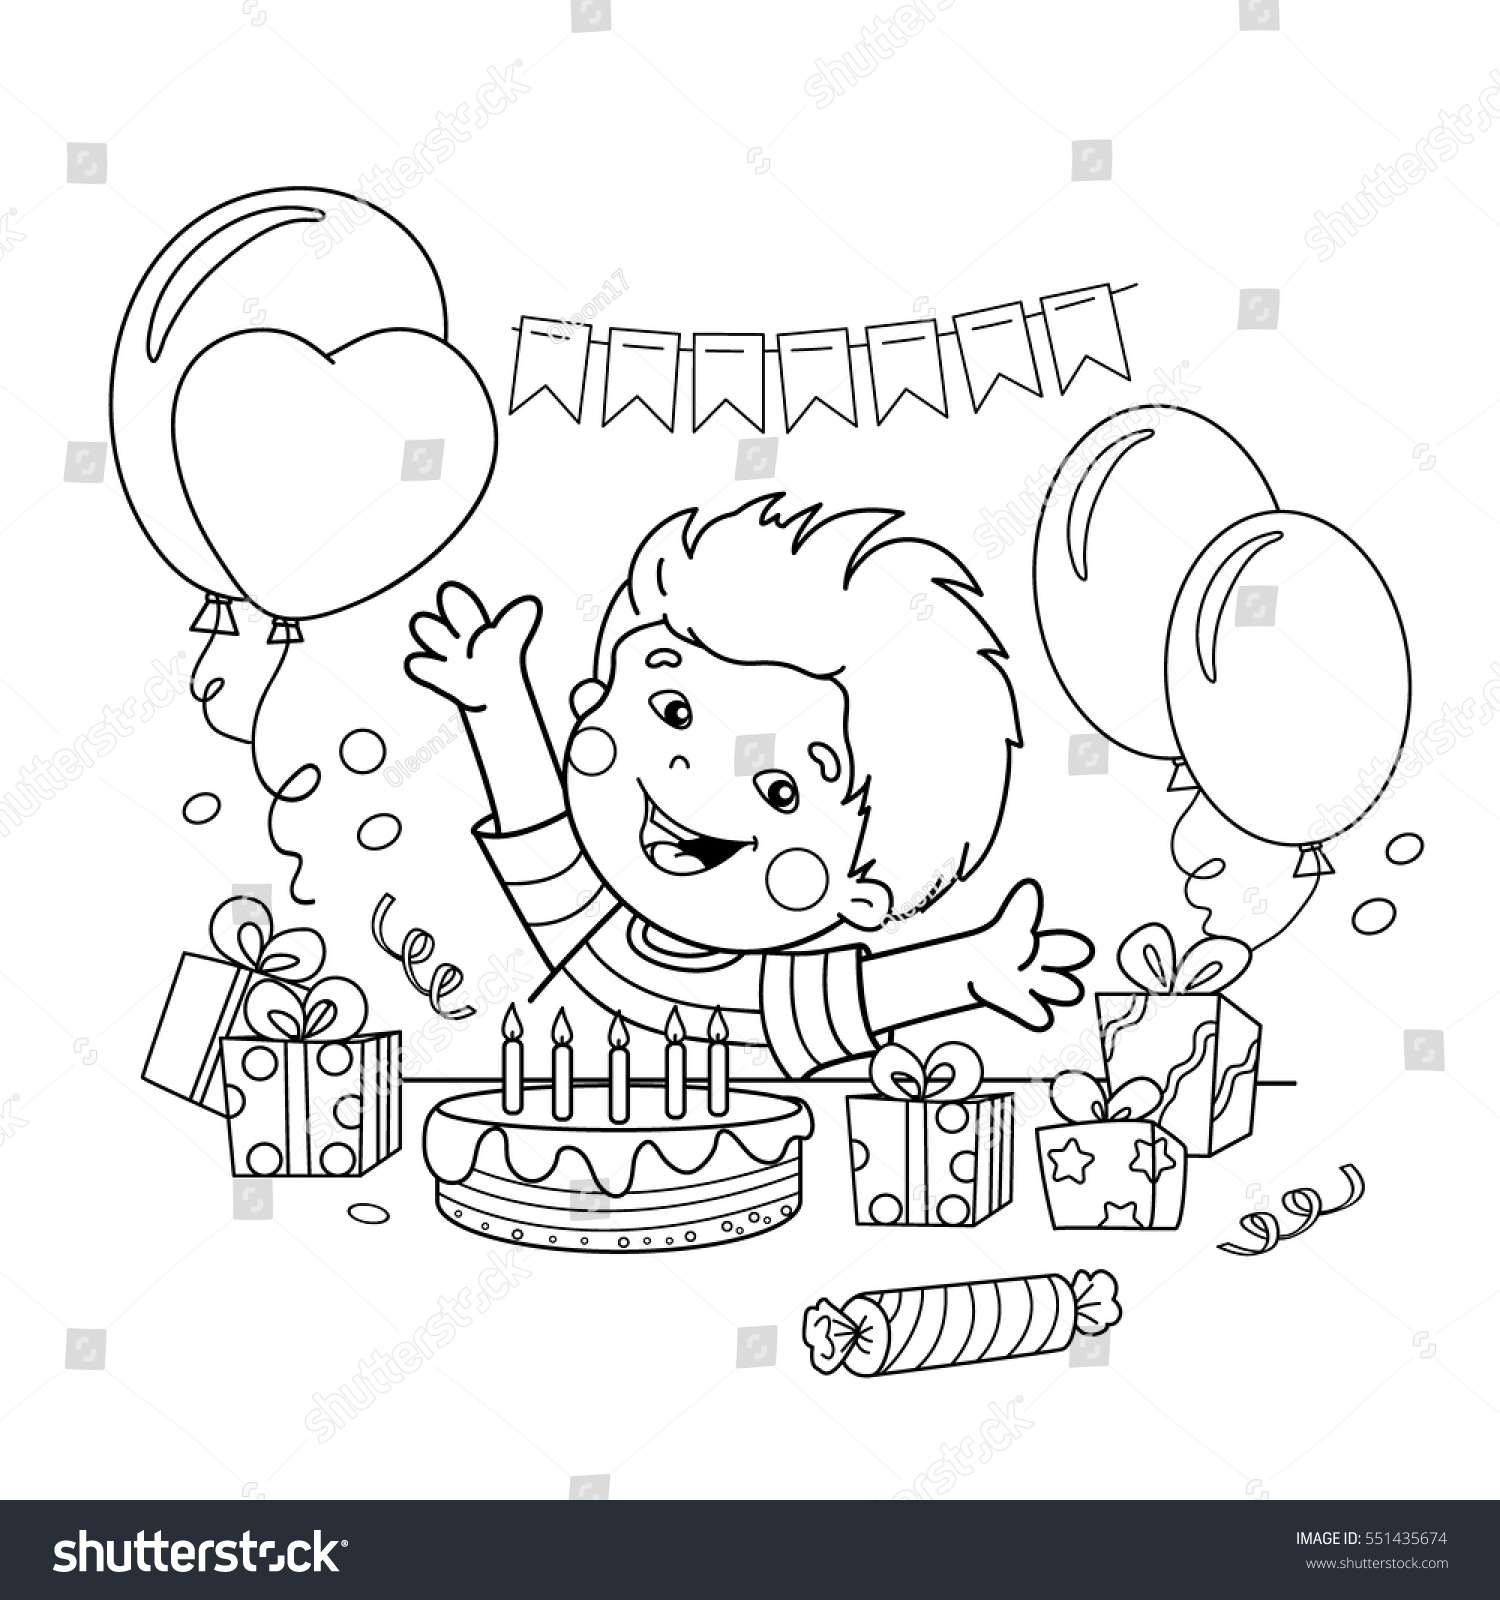 Coloring Page Outline Of Cartoon Boy With A Gifts At The Holiday Birthday